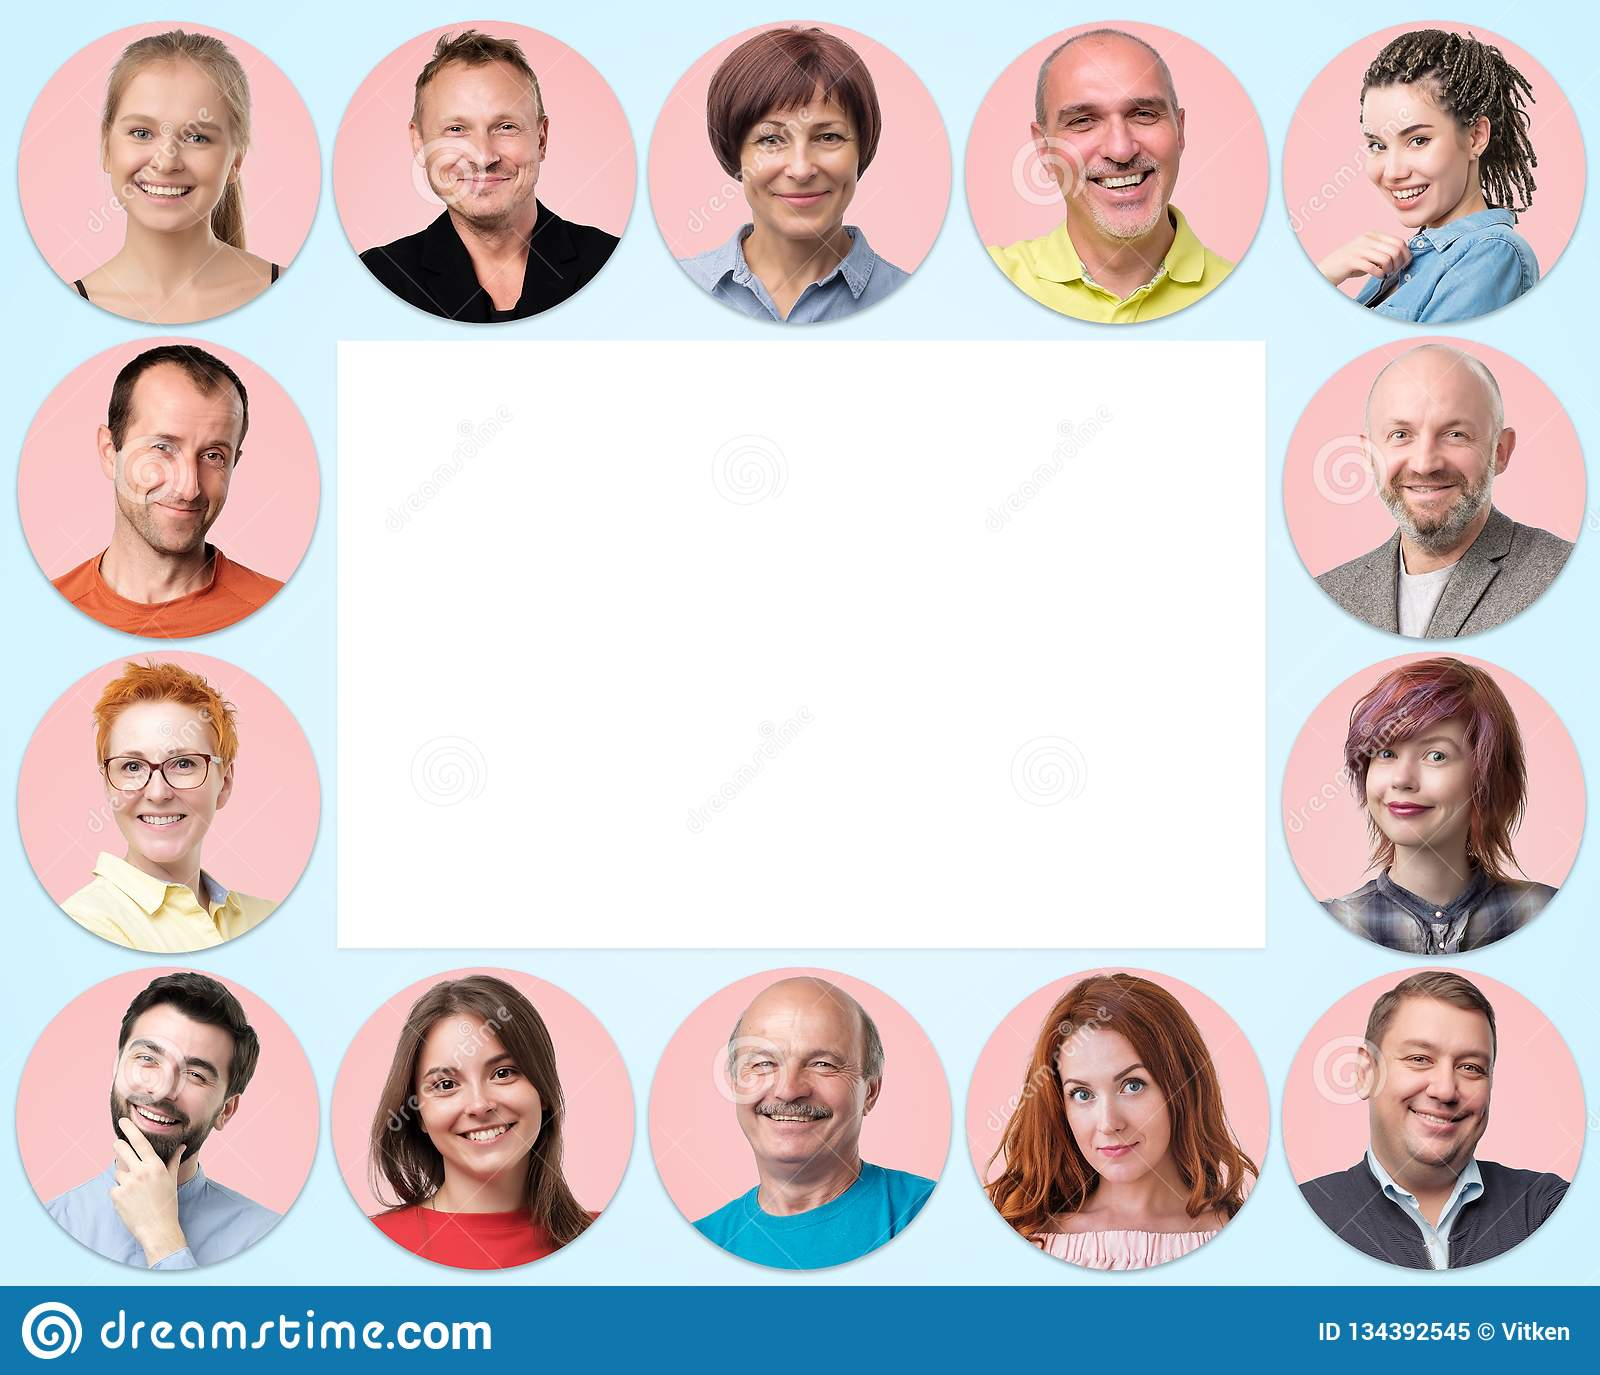 Collection of circle avatar of people. Young and senior men and women faces on pink color.